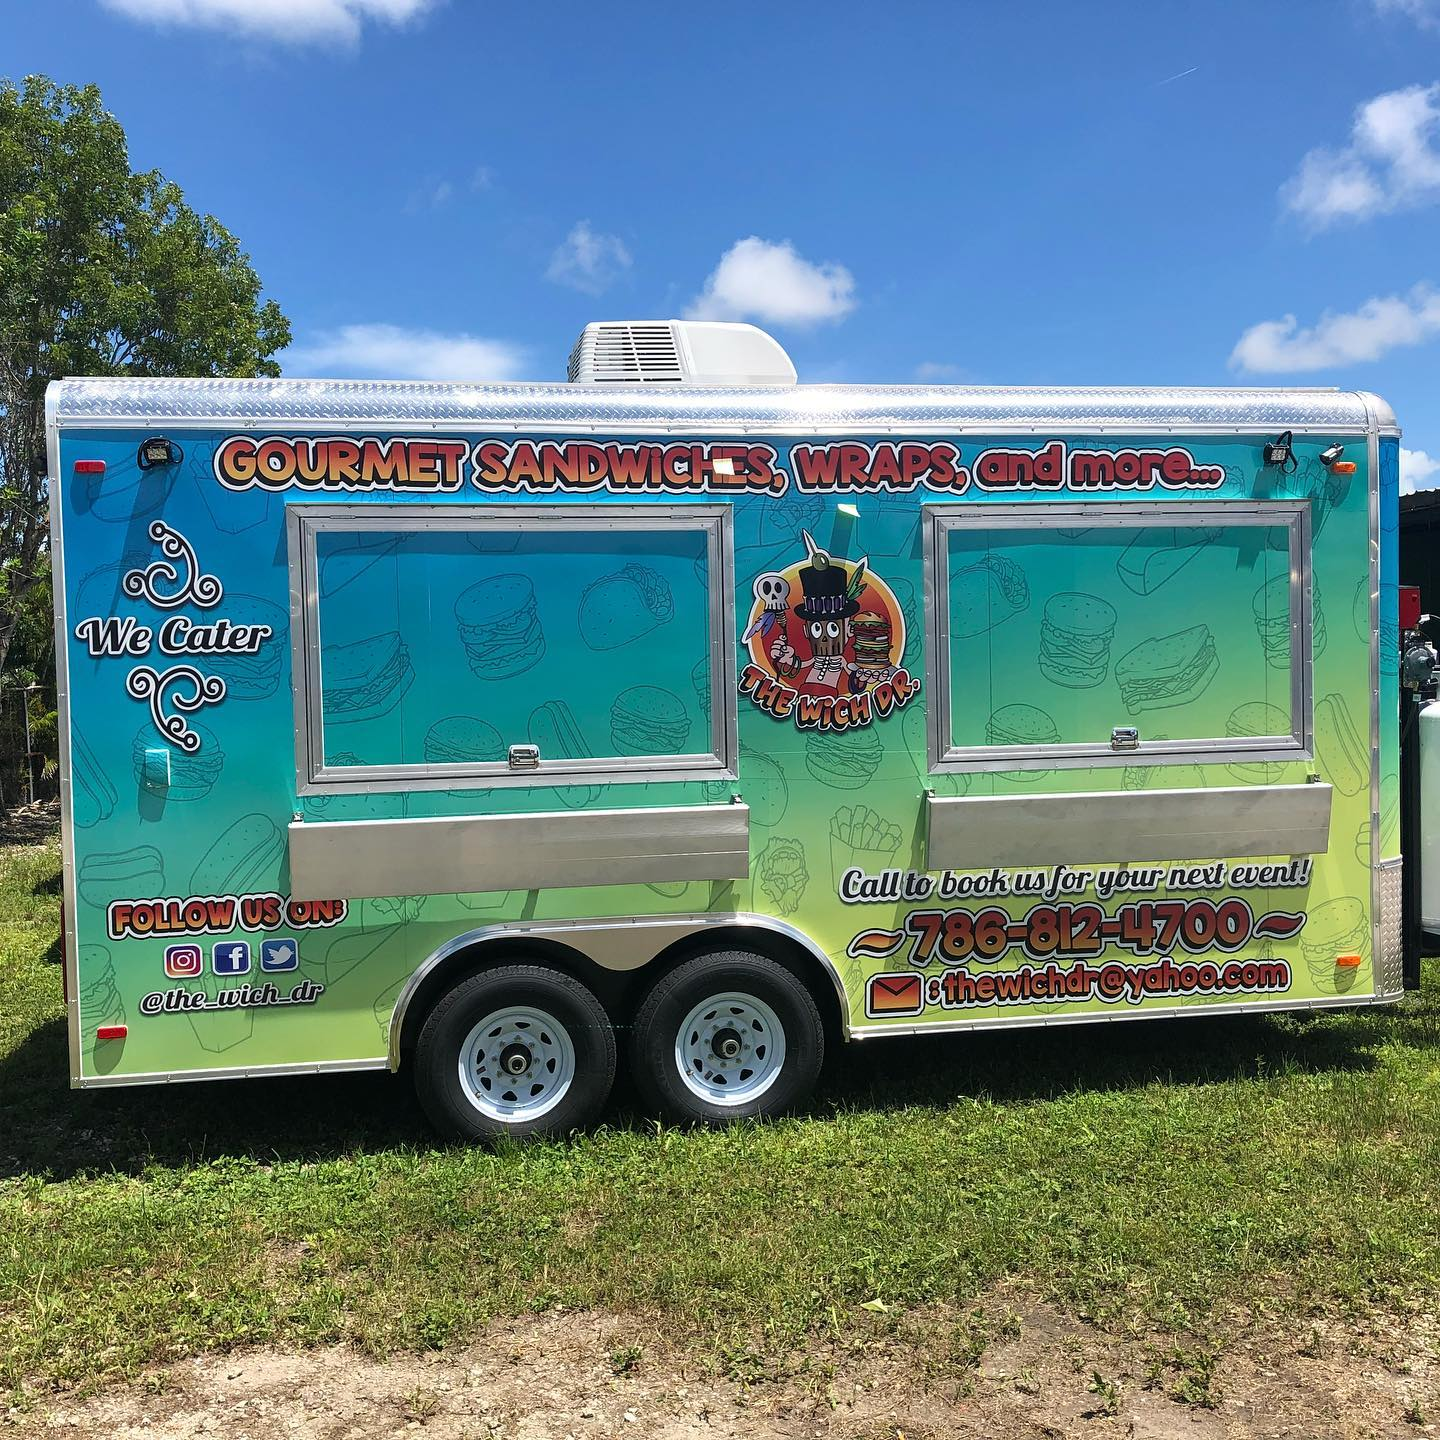 The Wich Dr. Food Truck